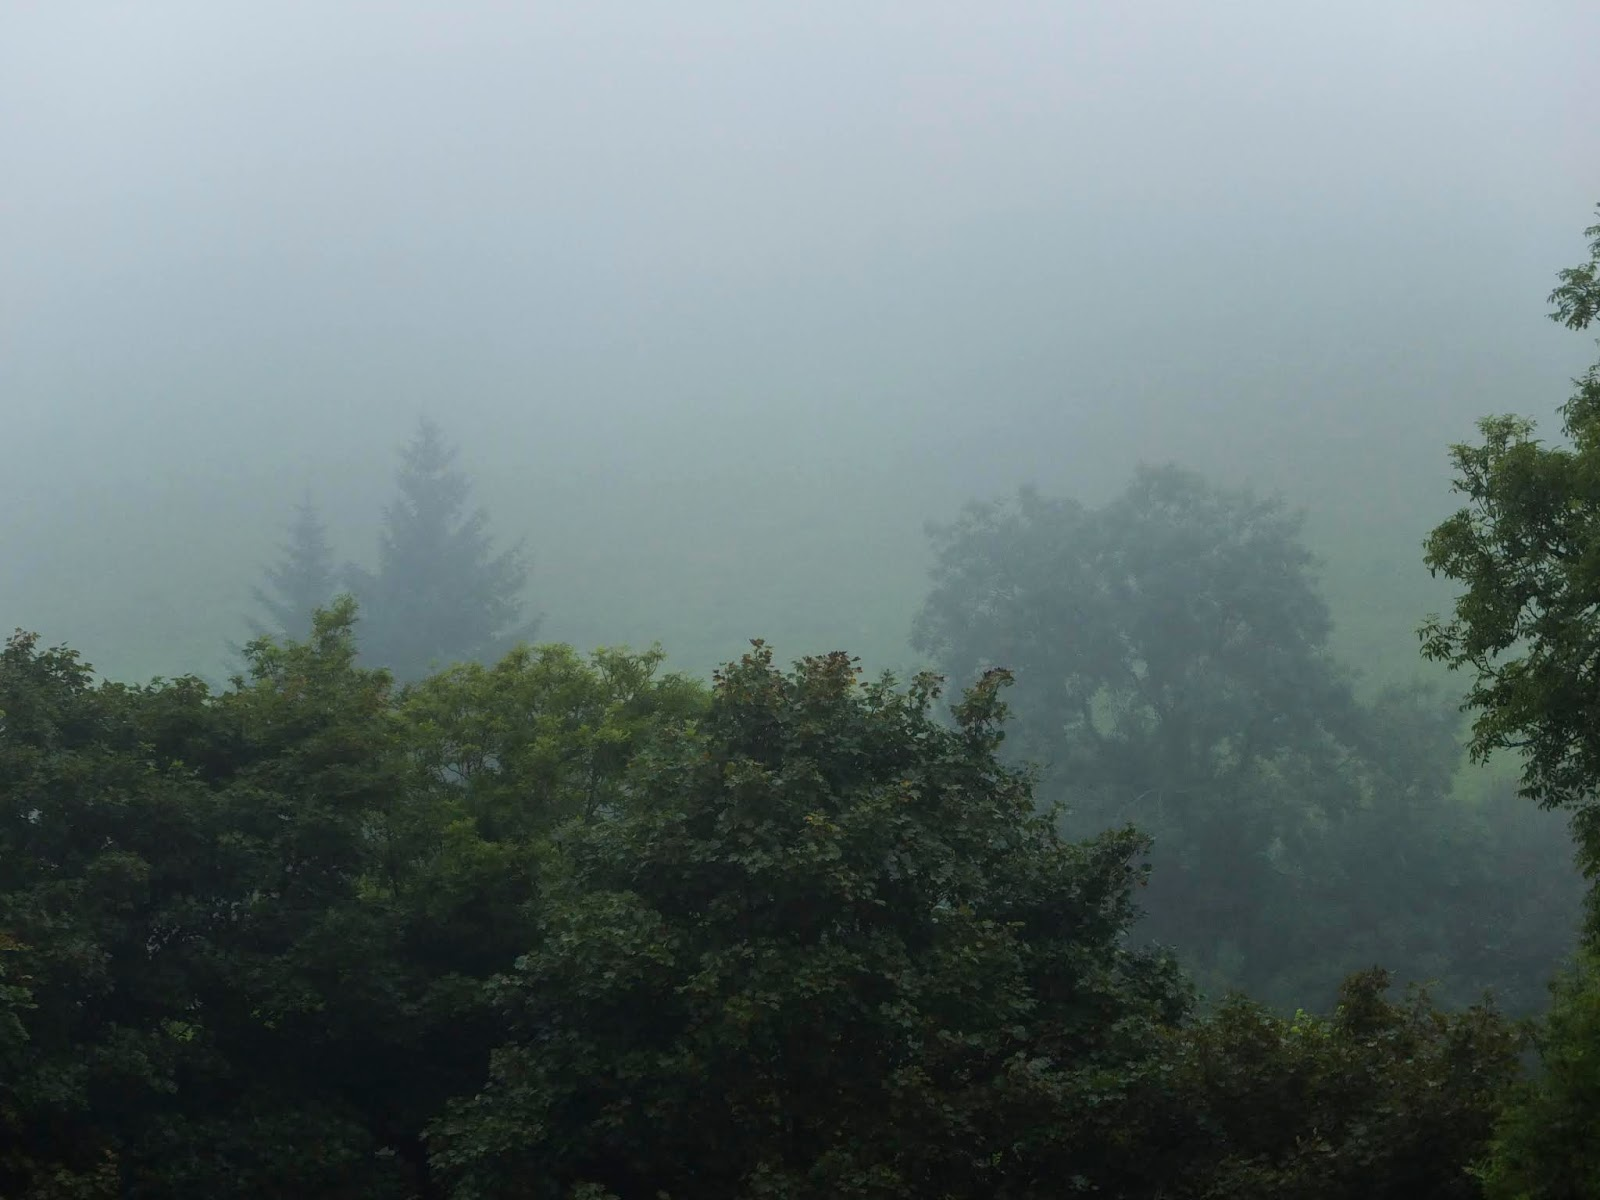 Misty and foggy tree tops in the Boggeragh Mountains, County Cork.